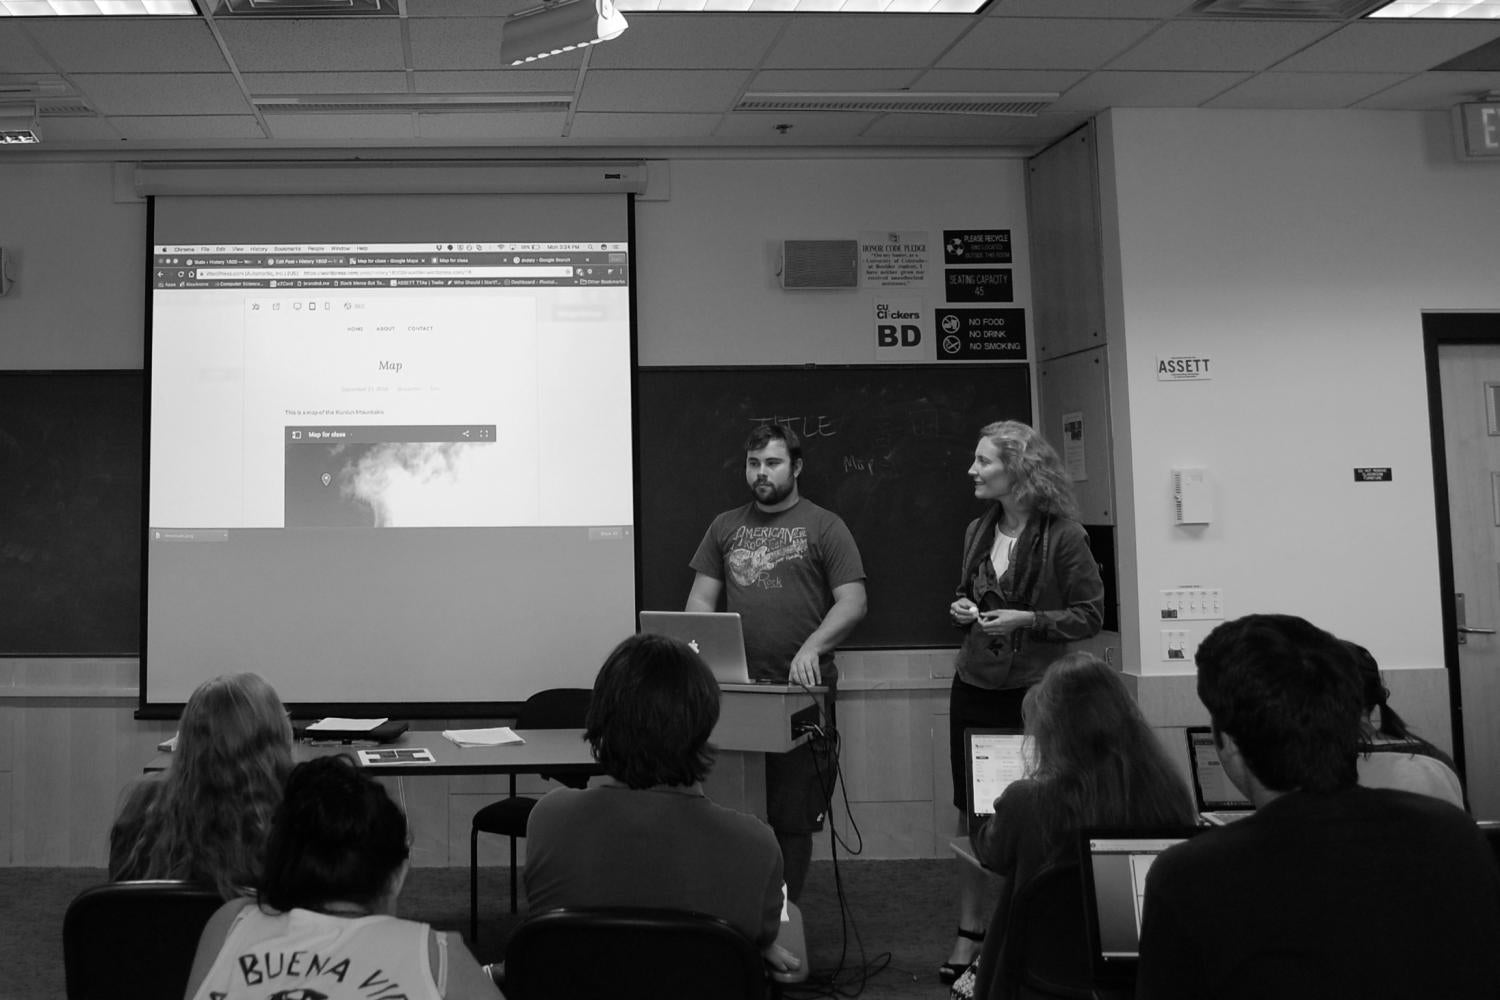 Dr. Anne Lester and Student Fellow Jake presenting to the class